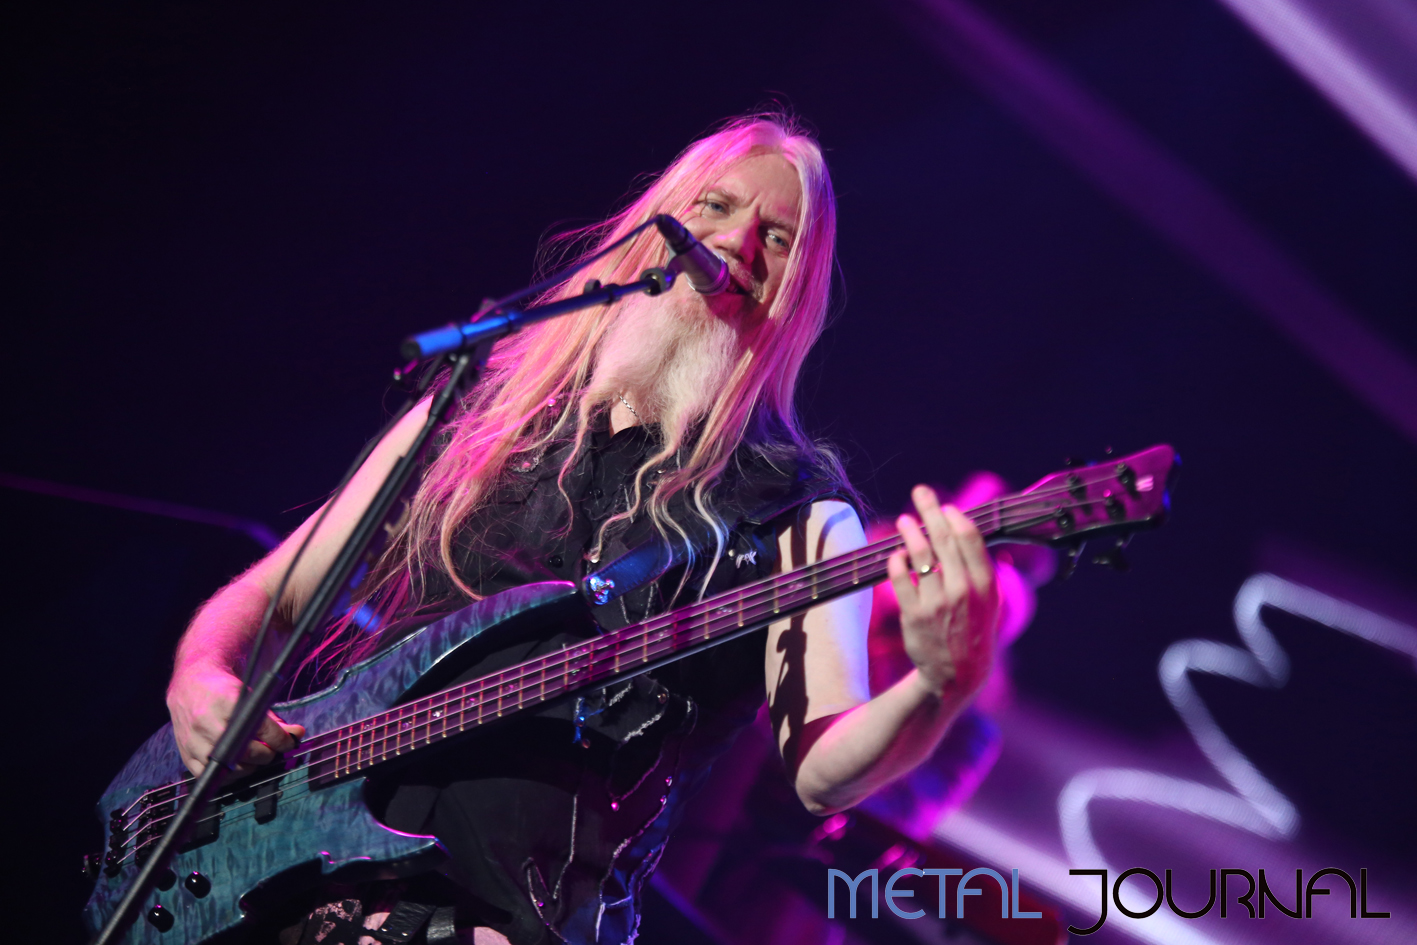 nightwish metal journal 2018 BEC pic 10